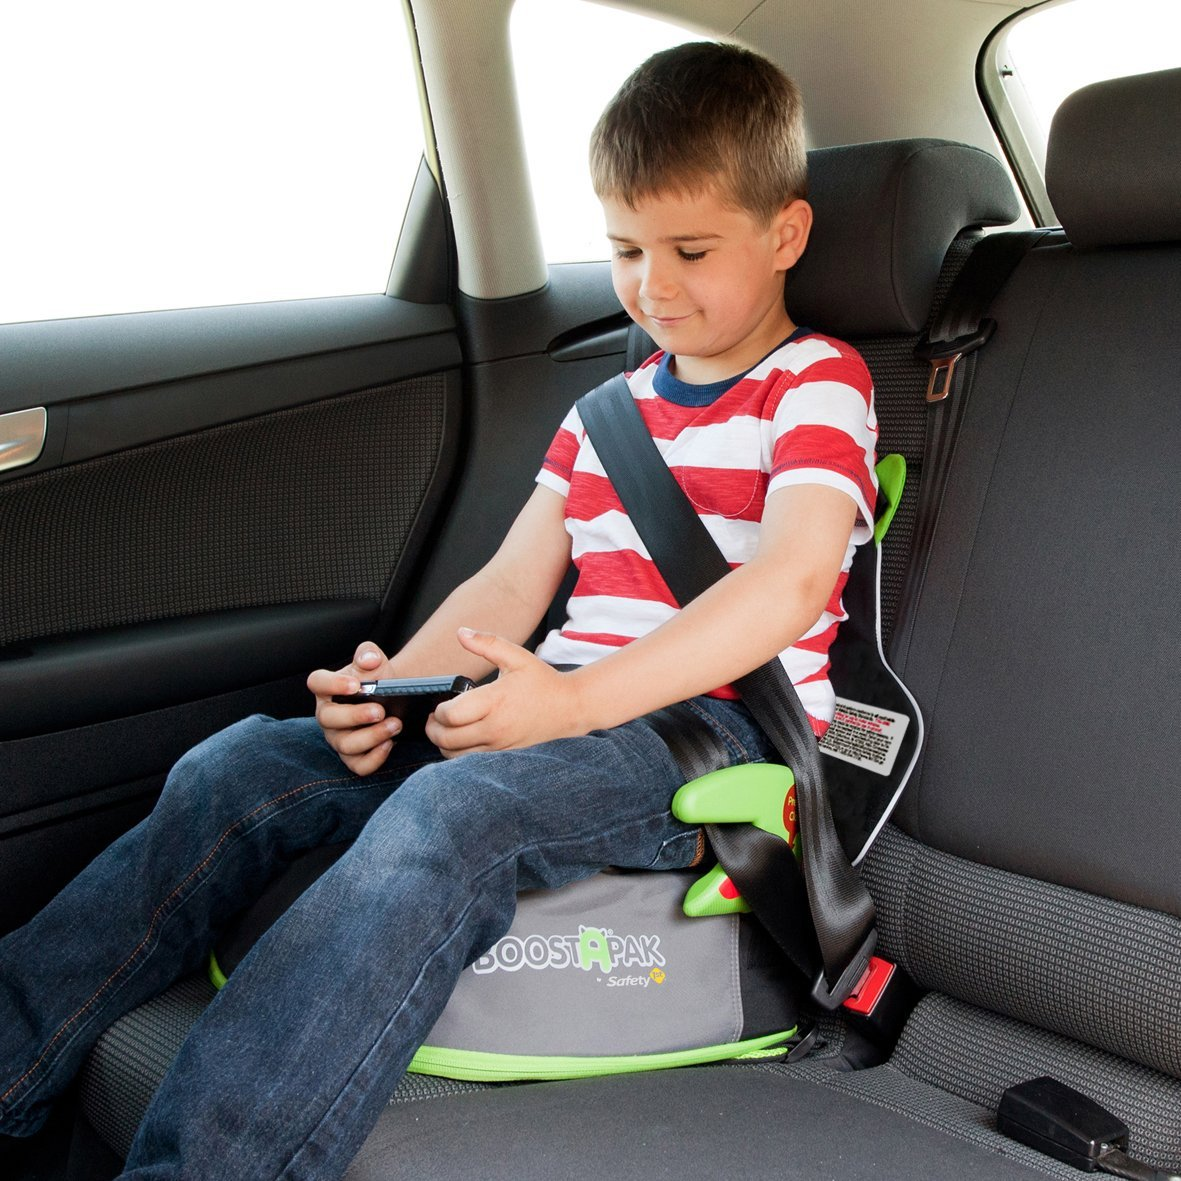 Europe Child Car Seat Laws